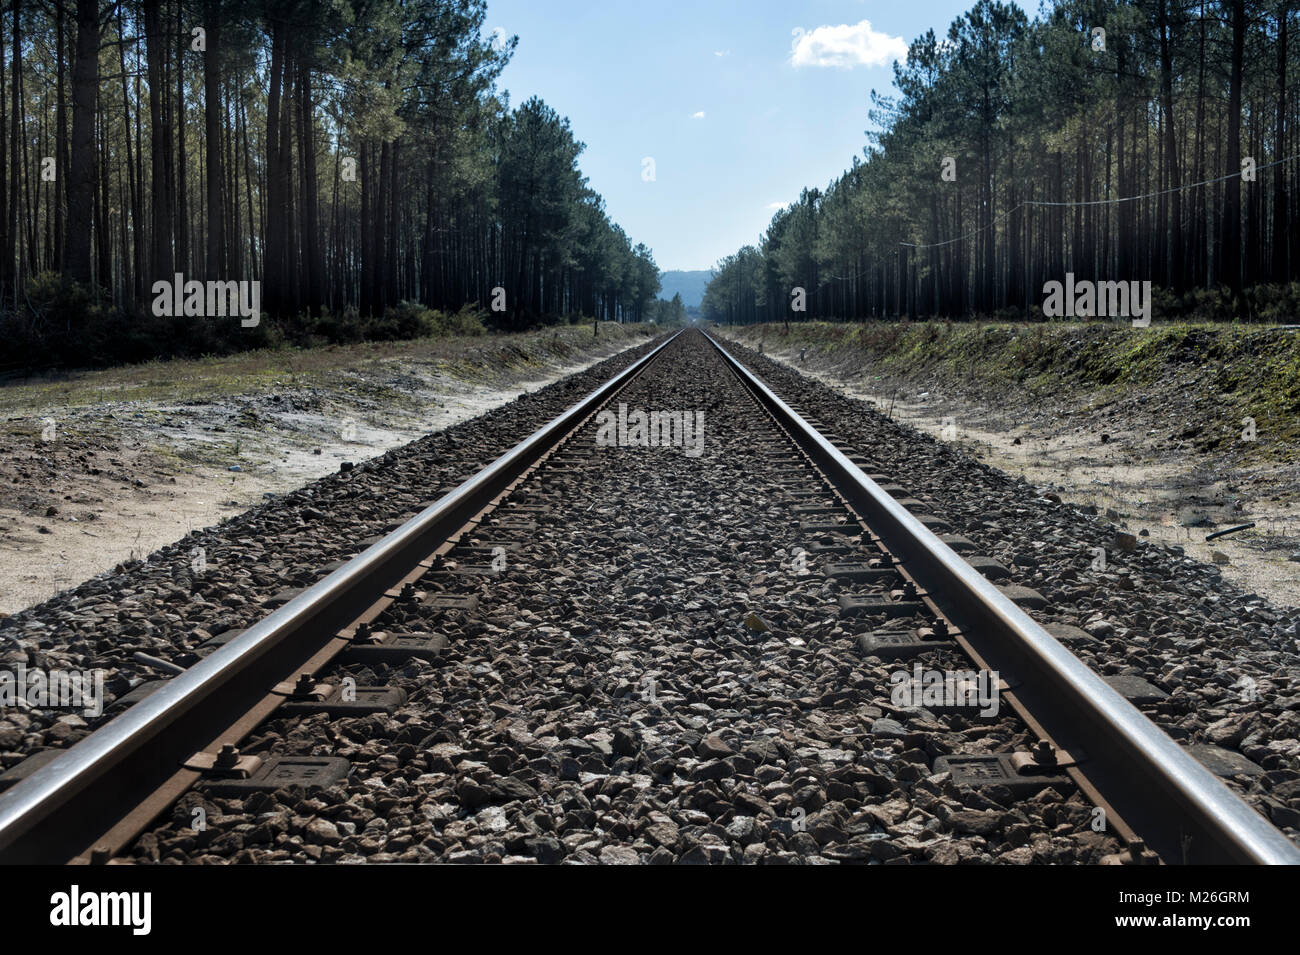 long straight railway tracks into the far distance. Perspective. - Stock Image